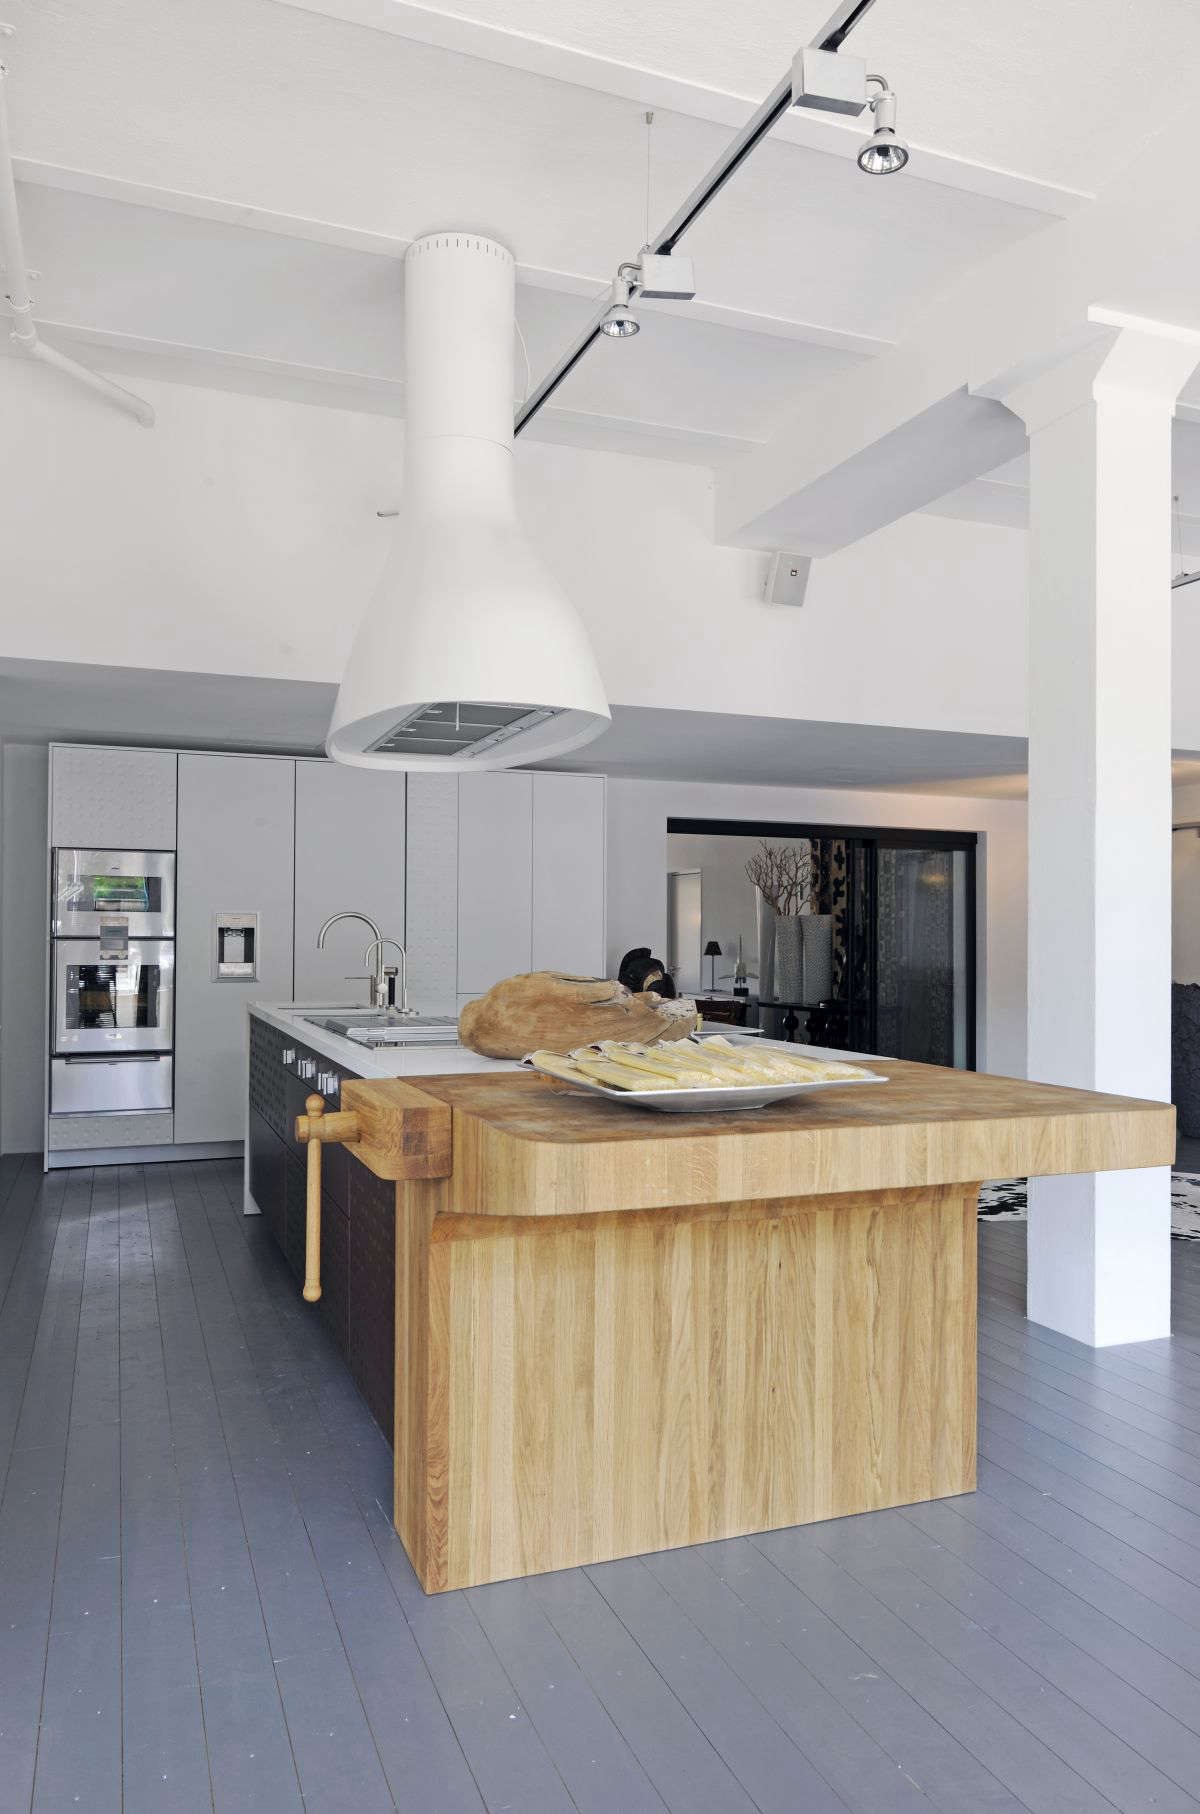 Italian kitchen designers schiffini use end grain butcher block at the end of a kitchen